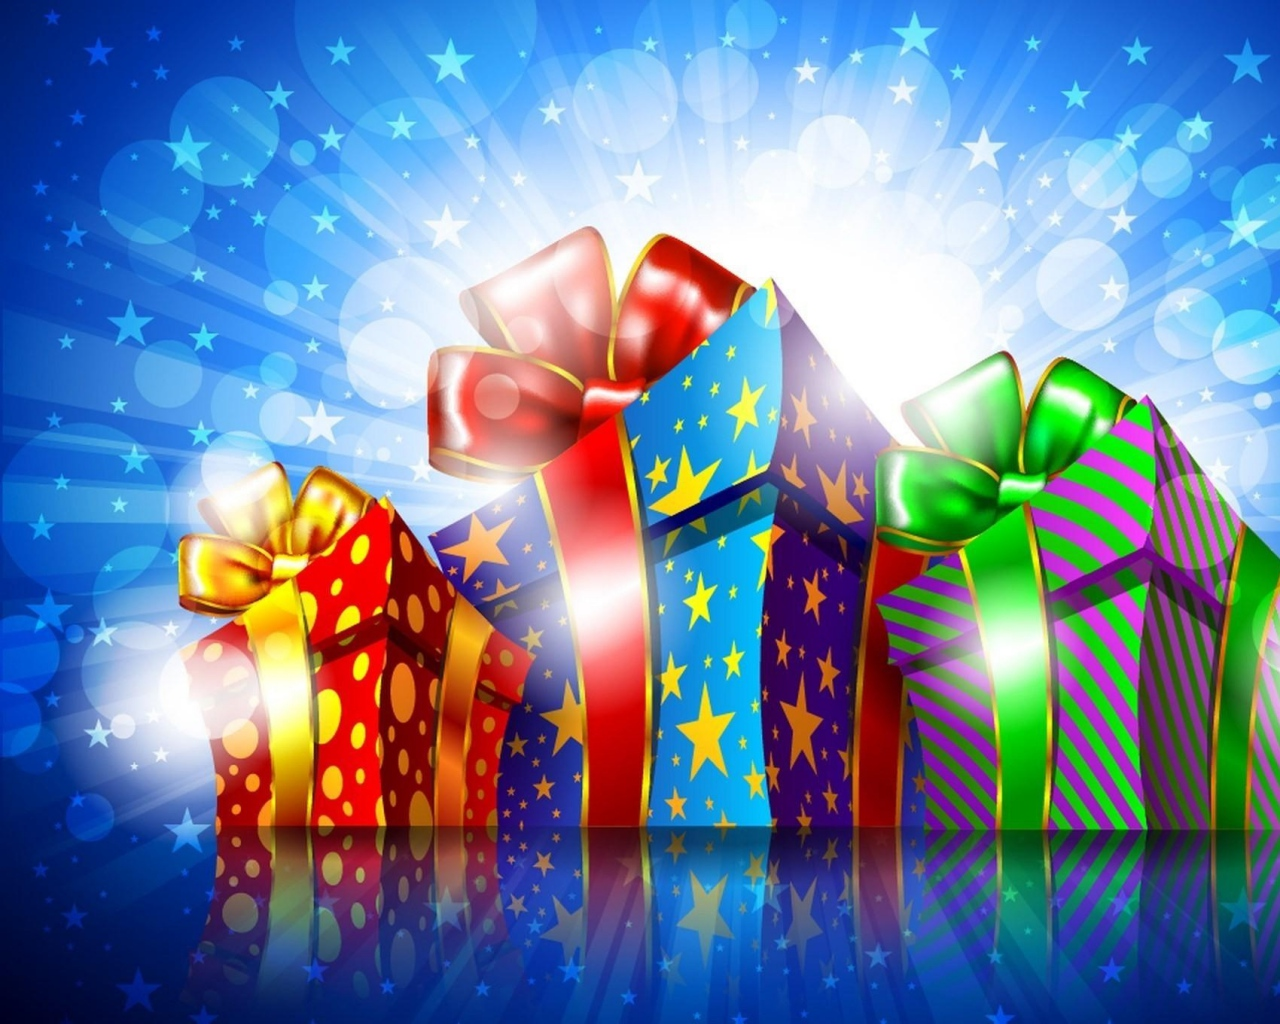 presents_three_packings_bow-knot_stars_light_65004_1280x1024